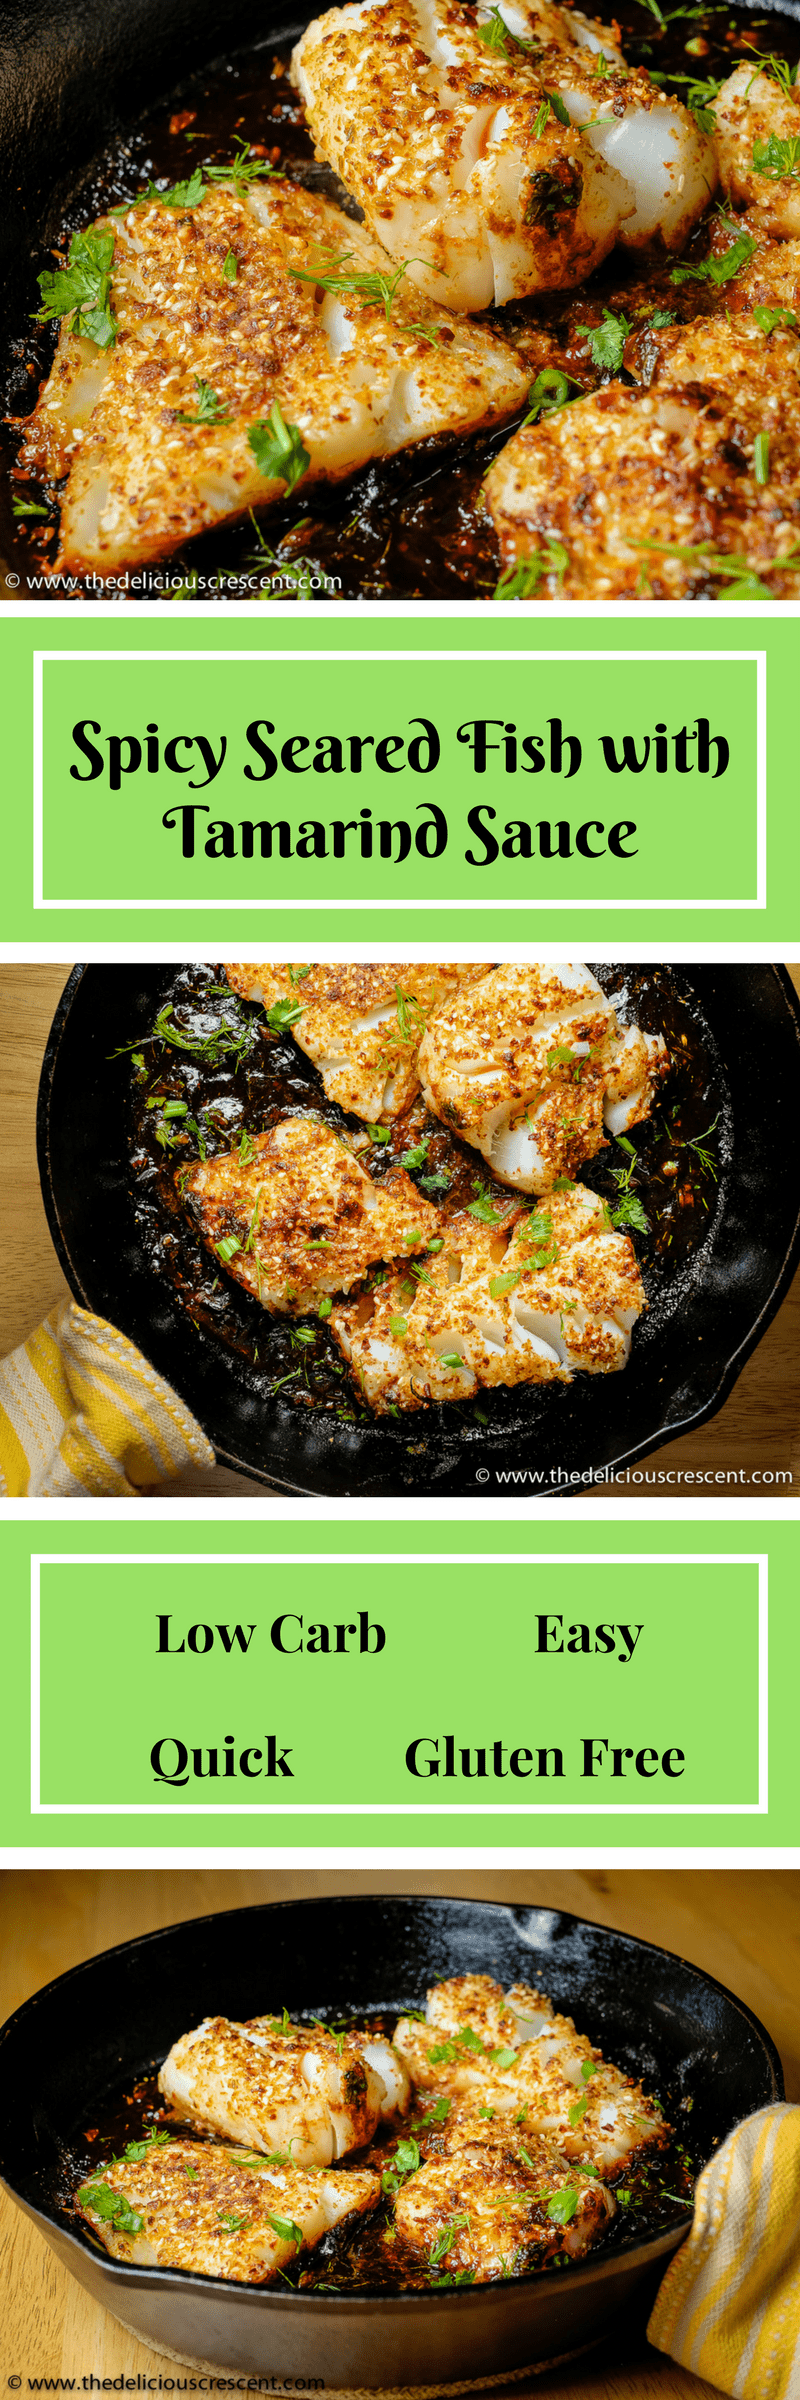 Pan Seared Fish with Tamarind Sauce, a tasty flaky fish with a spicy crust in a tangy sauce. Low in calories and carbs, high in protein and healthy fats!